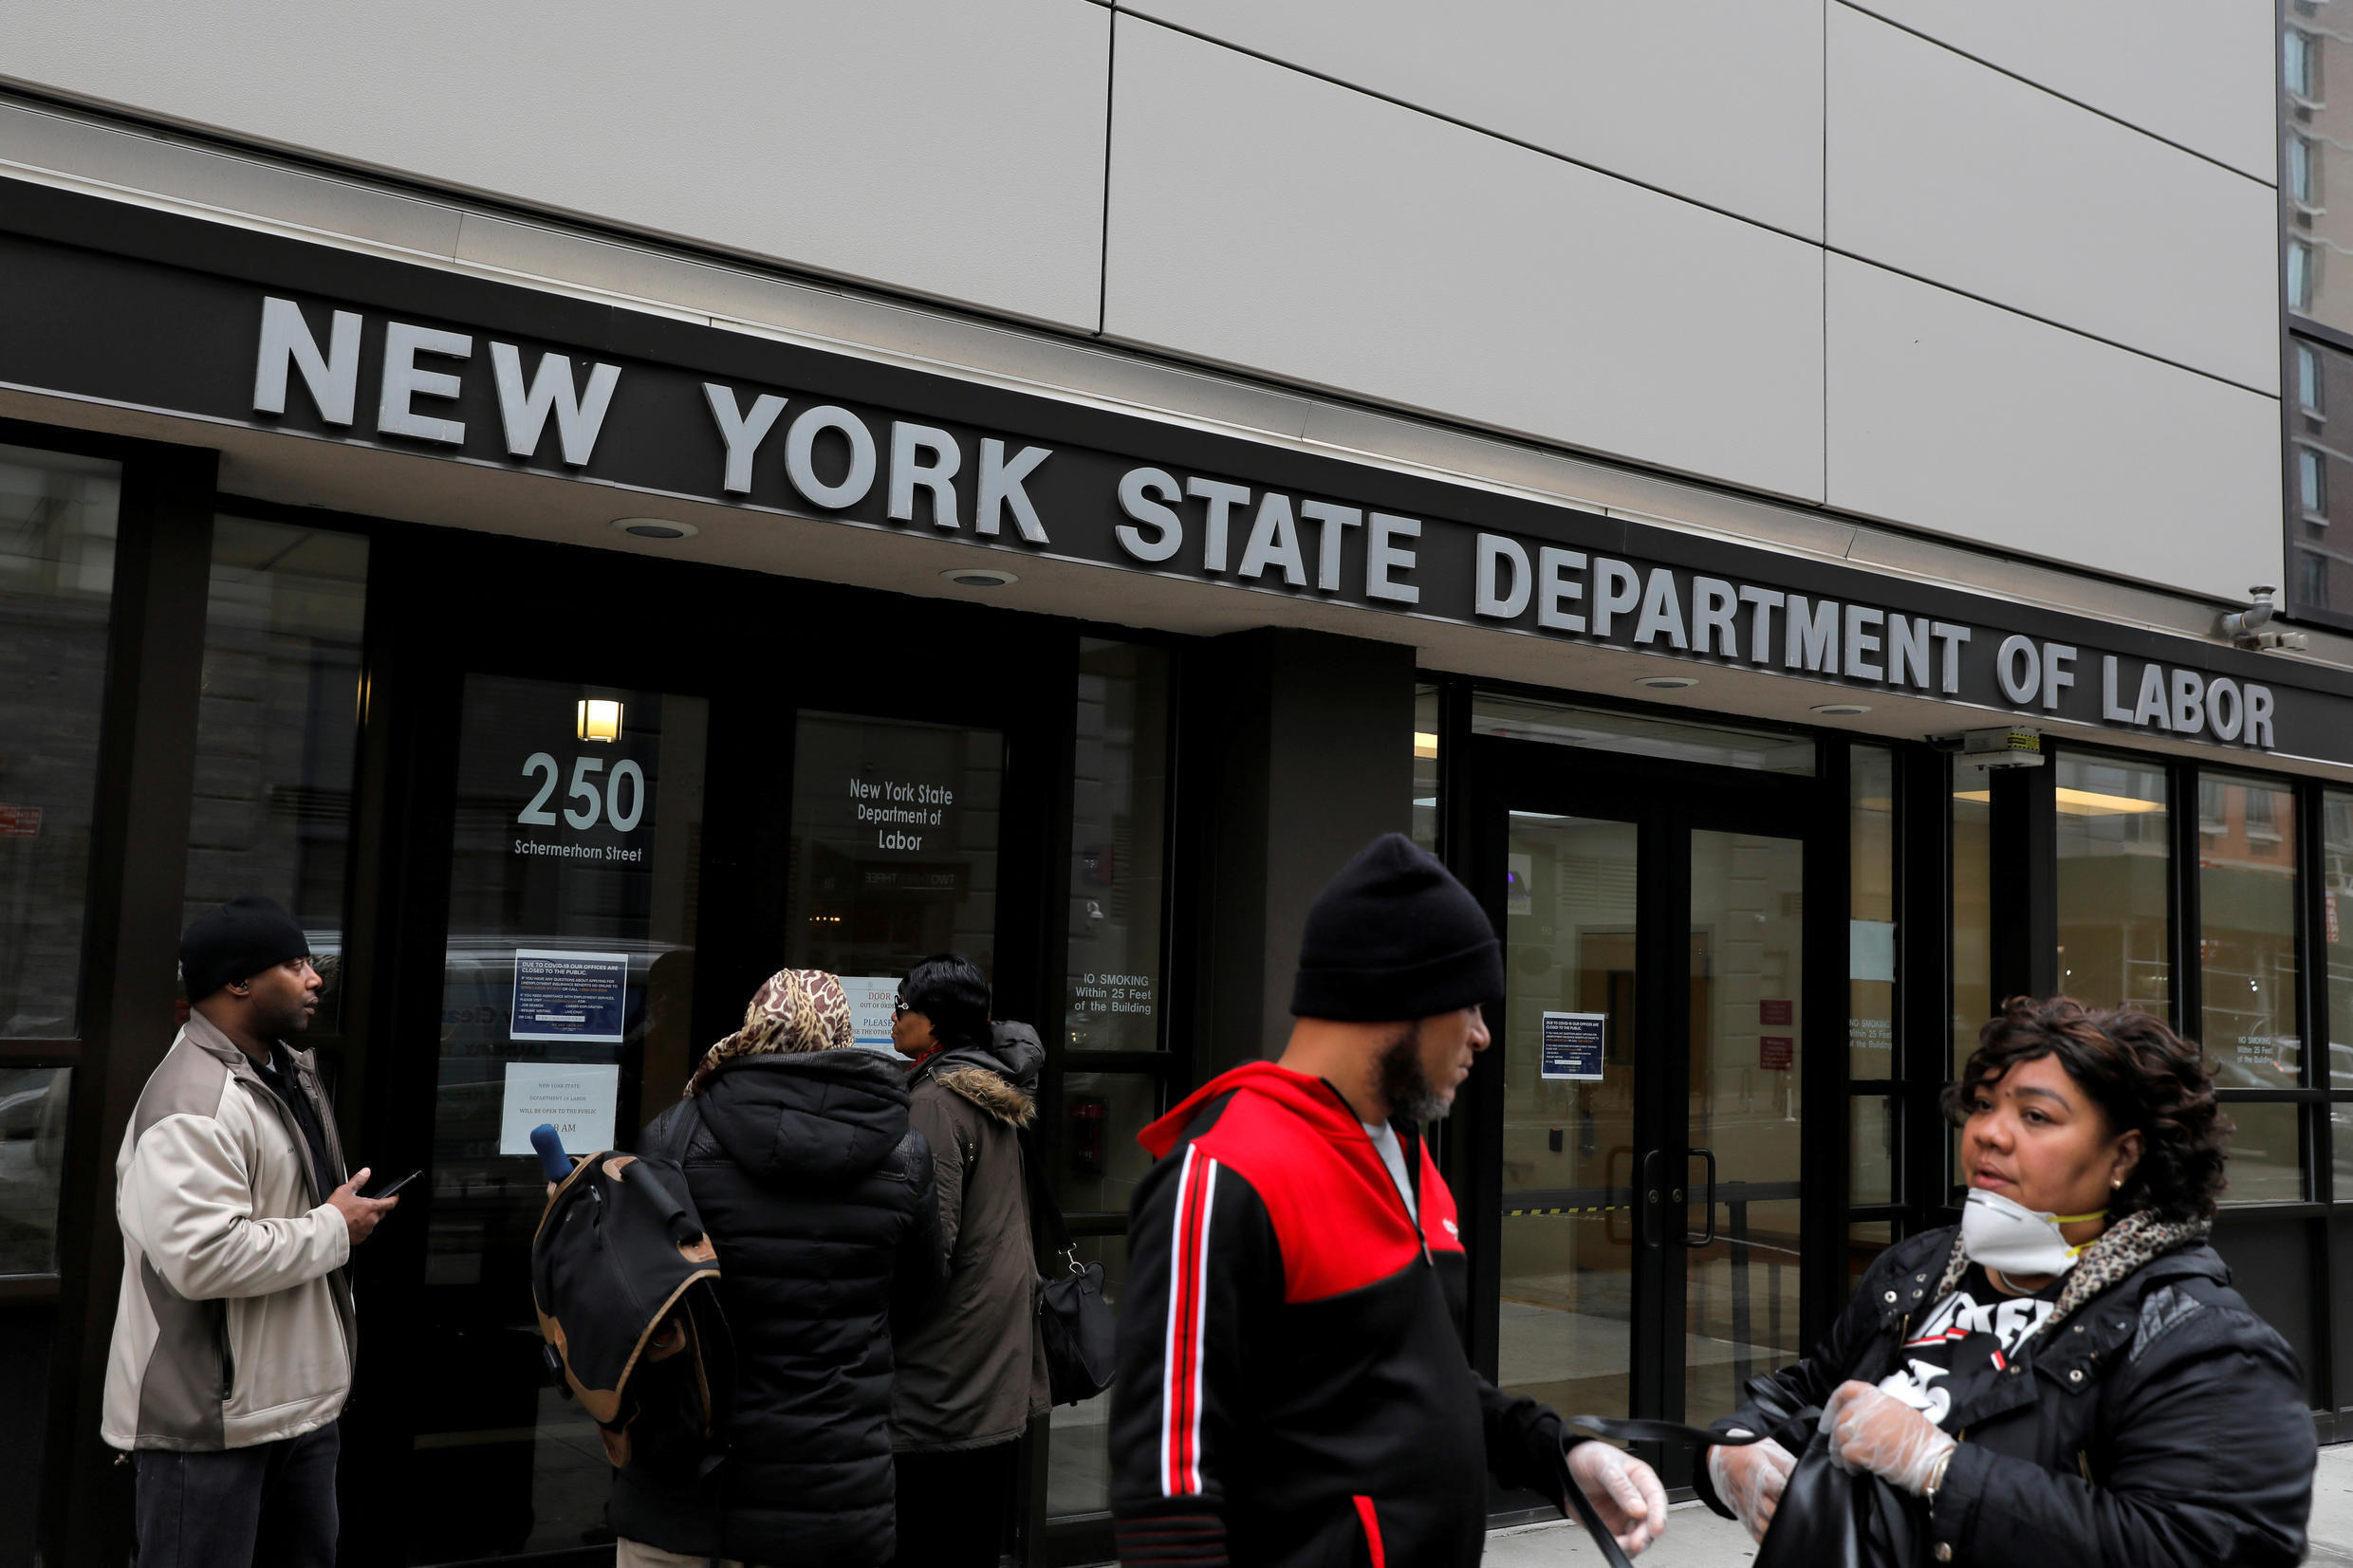 File photo taken March 20, 2020 of people gathering outside the New York State Department of Labor offices.